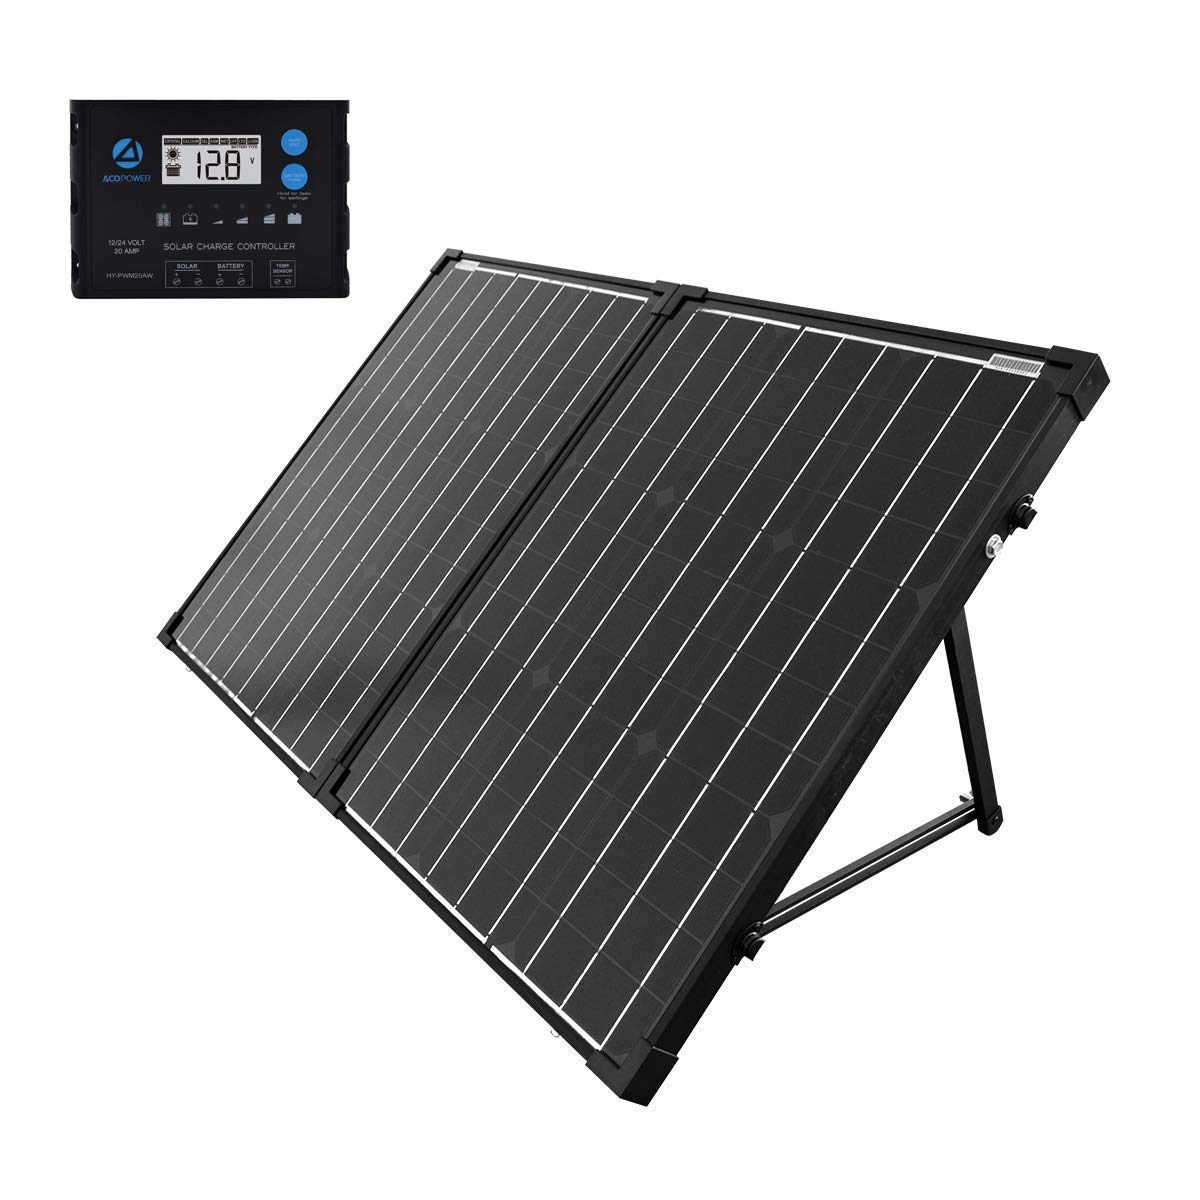 ACOPOWER Portable Solar Panel Kit 100W, Foldable 2X 50W Mono Suitcase, ProteusX Waterproof 20A LCD Charge Controller for Both Generator and 12V Battery for RV & Marine (New Launched) by ACOPOWER